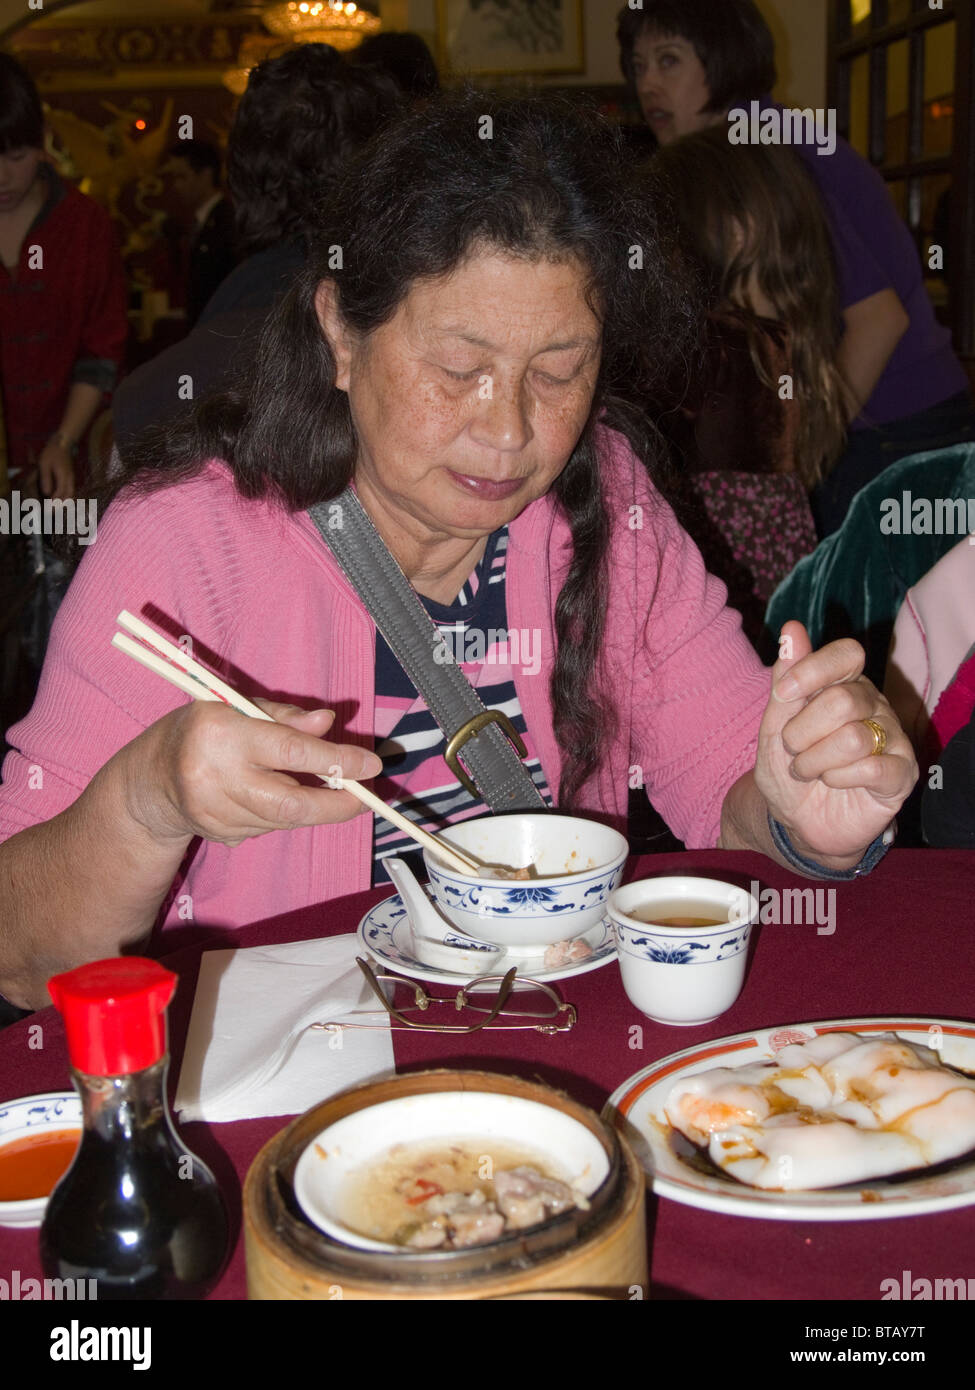 Woman eating dim sum in a Chinese restaurant, Chinatown, London, England, UK - Stock Image